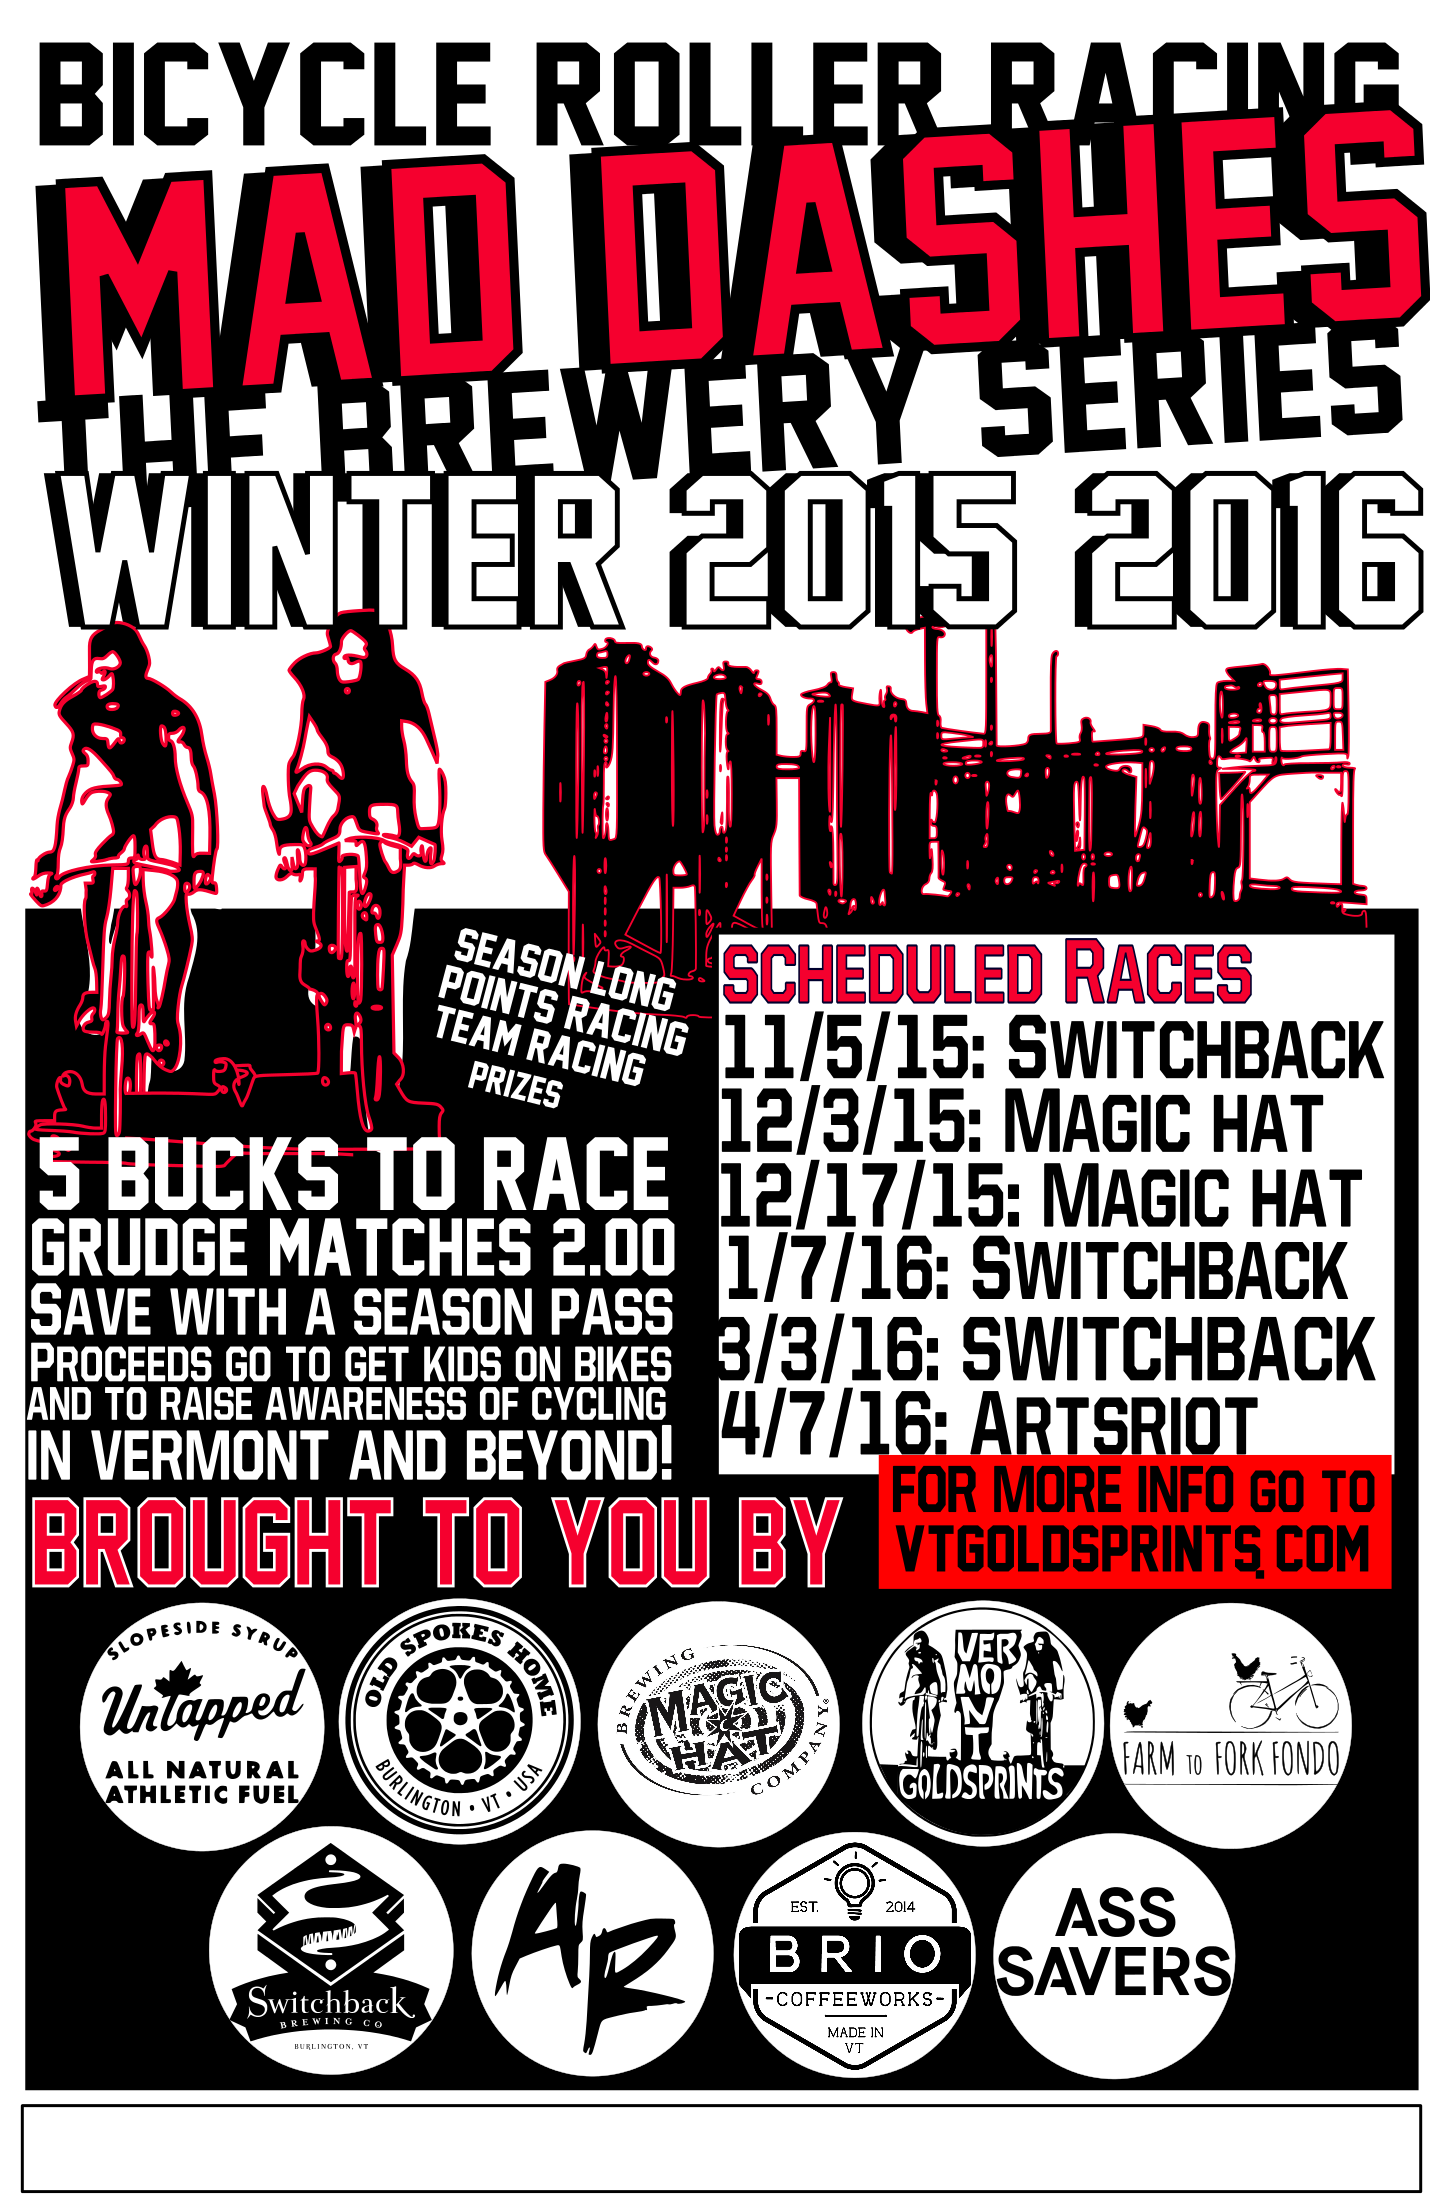 Mad dashes Flyer_20152016_color.png